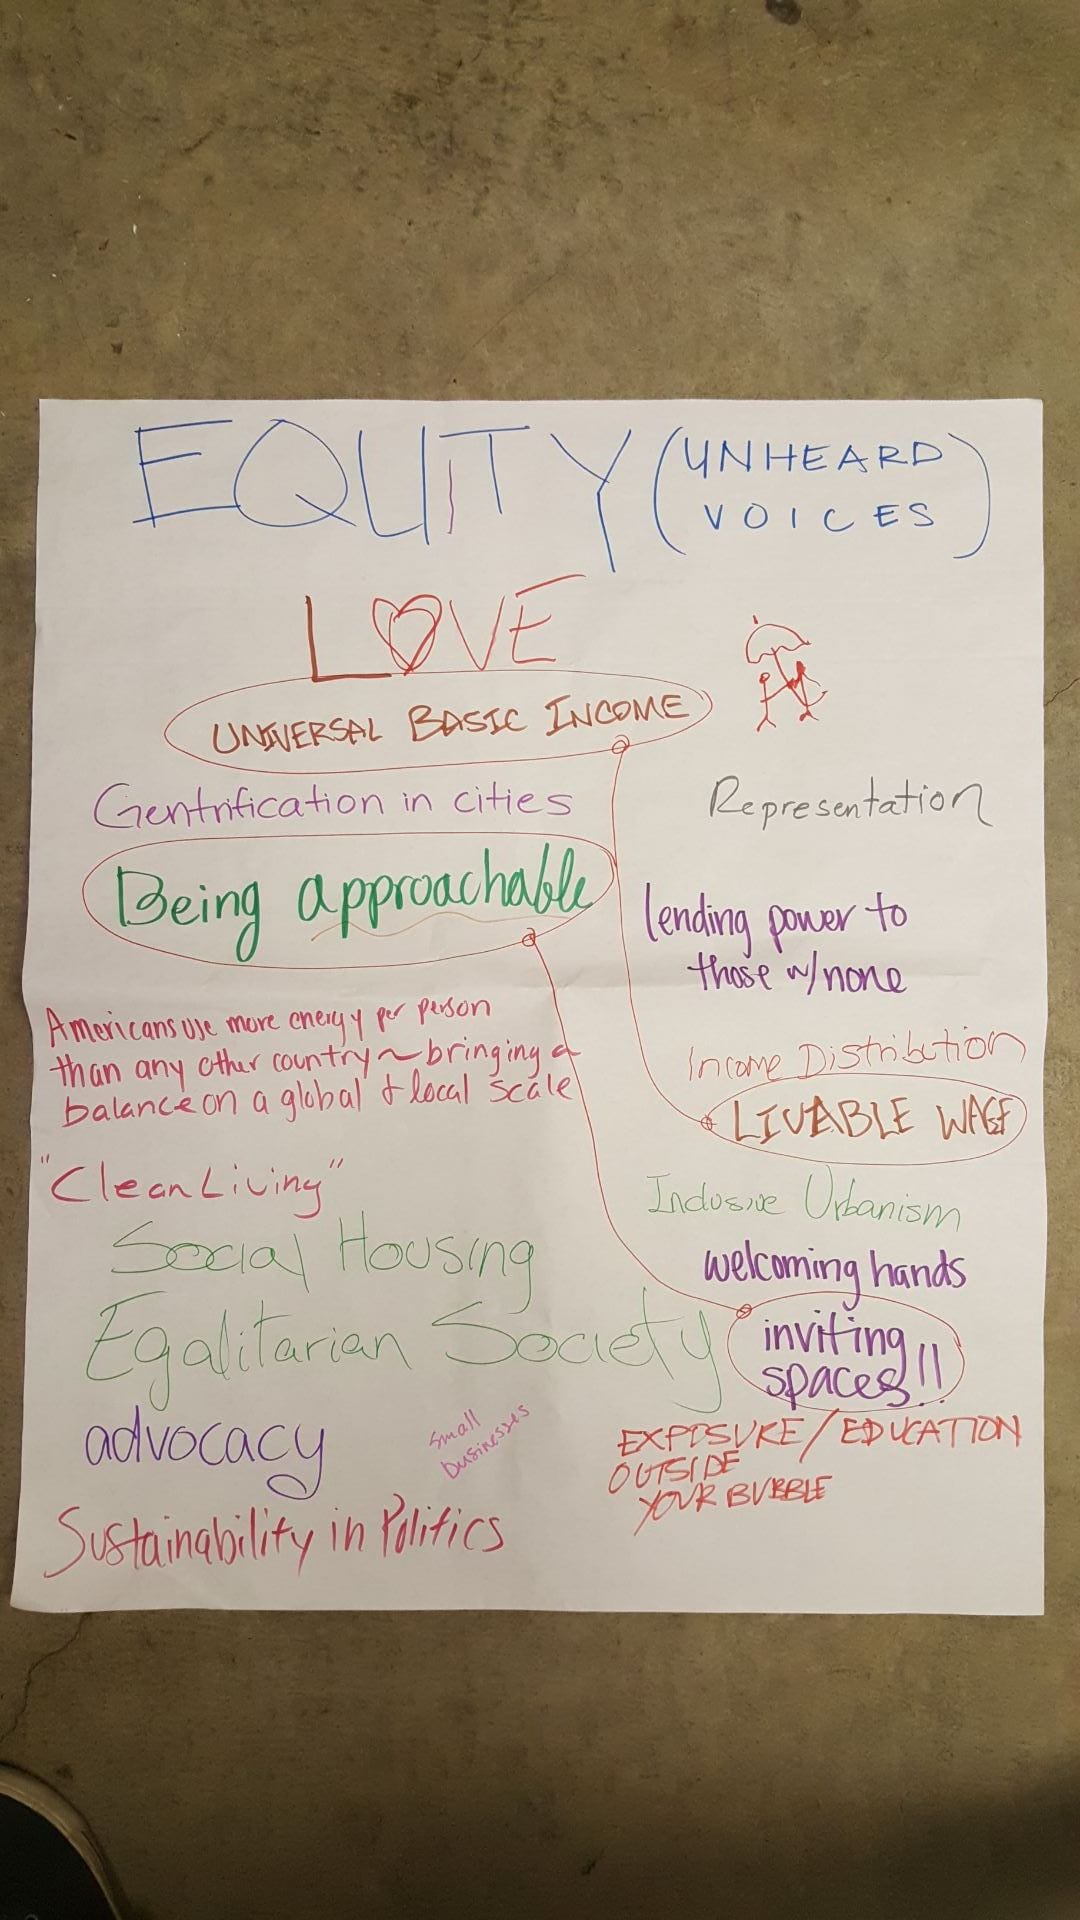 Equity and Unheard Voices-ptjj2y